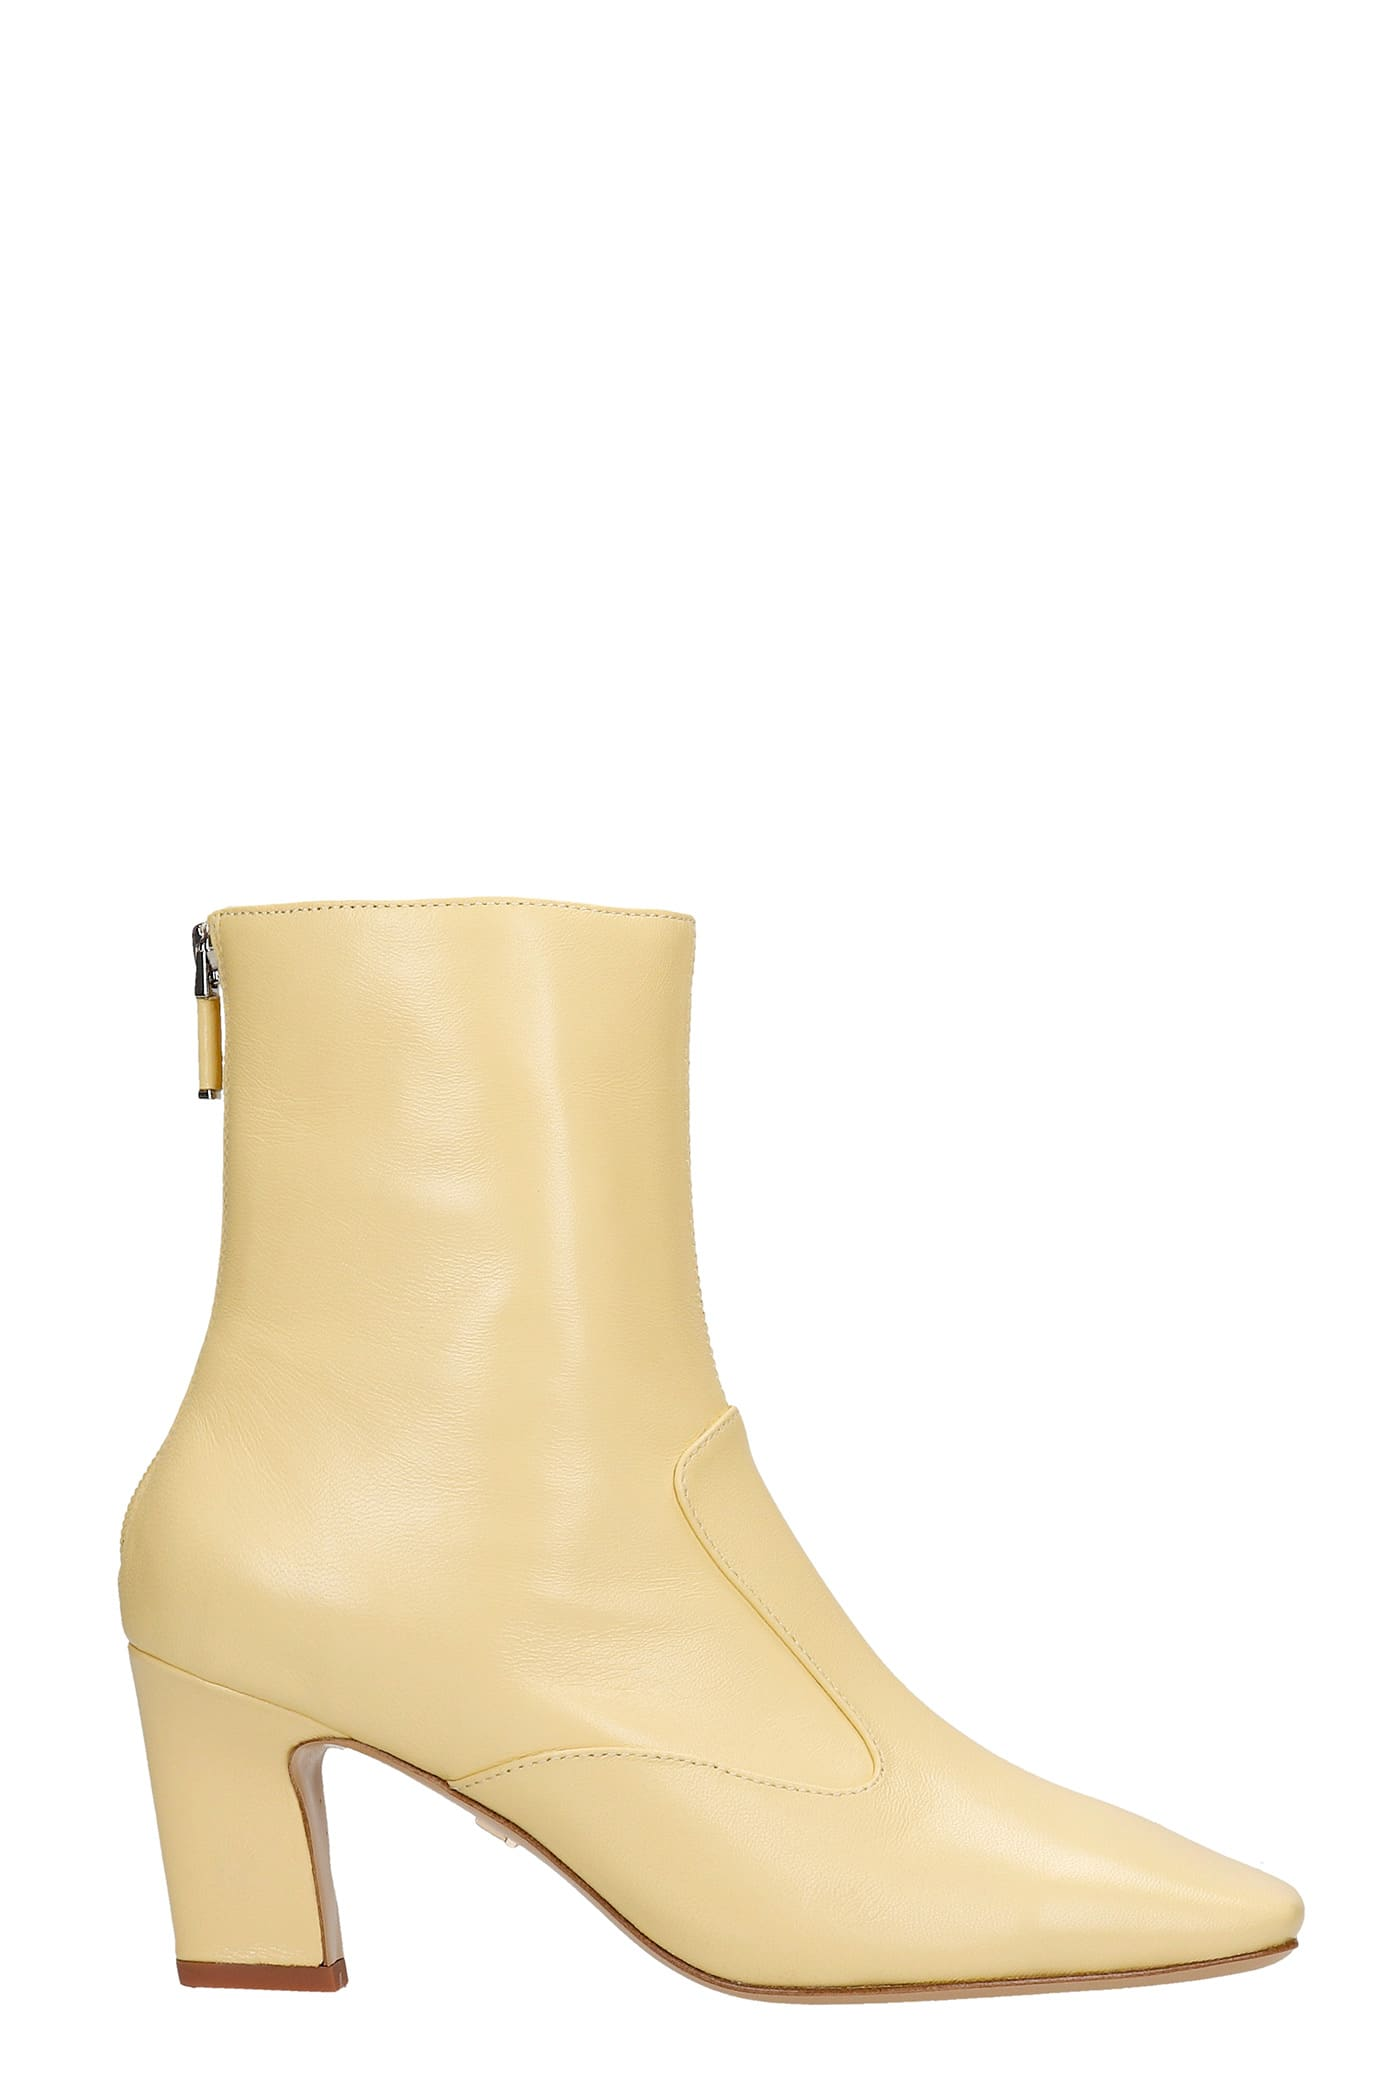 High Heels Ankle Boots In Yellow Leather